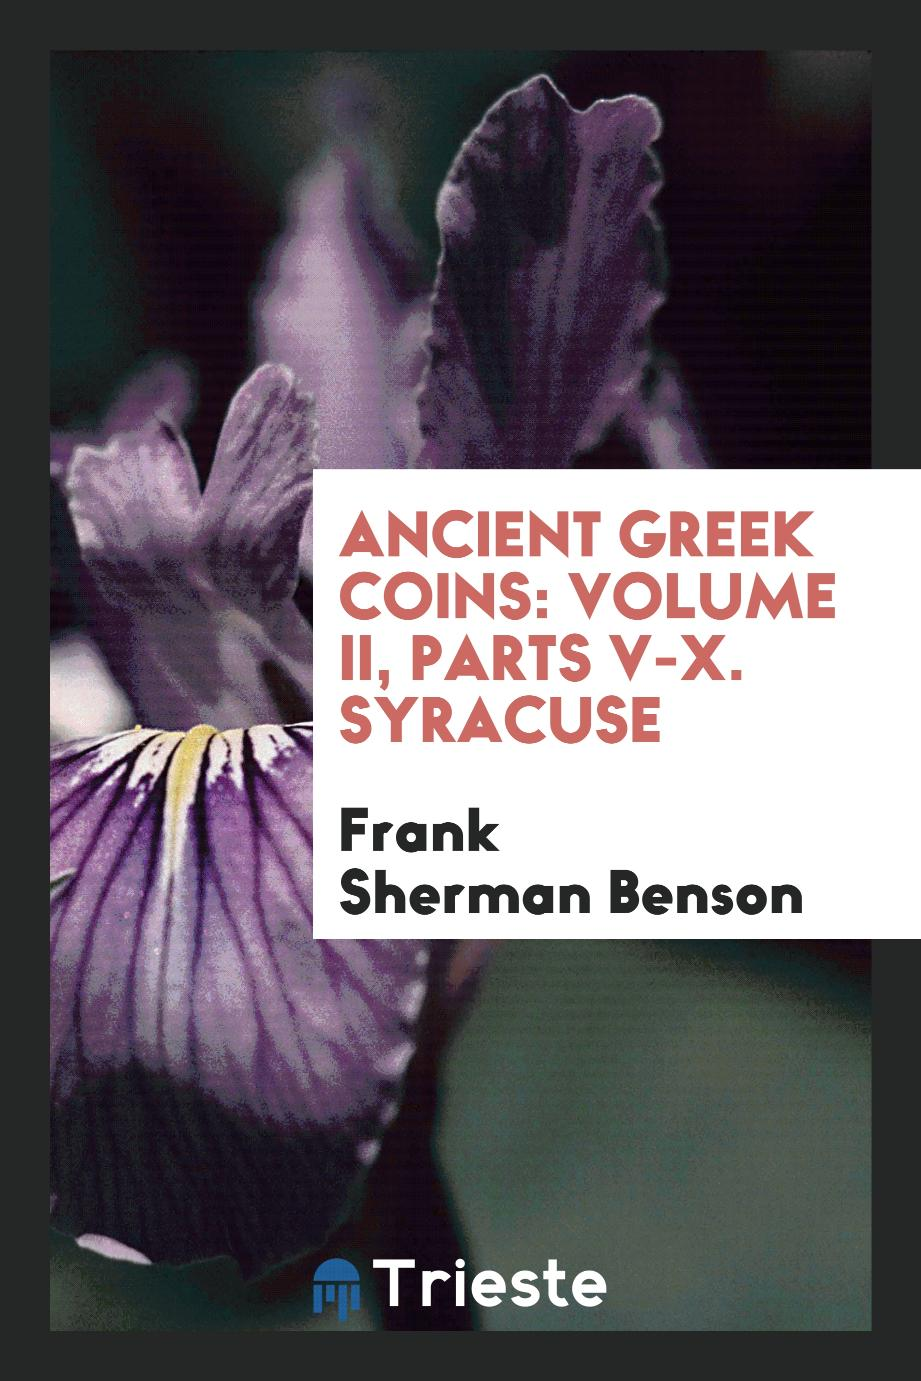 Ancient Greek Coins: Volume II, Parts V-X. Syracuse